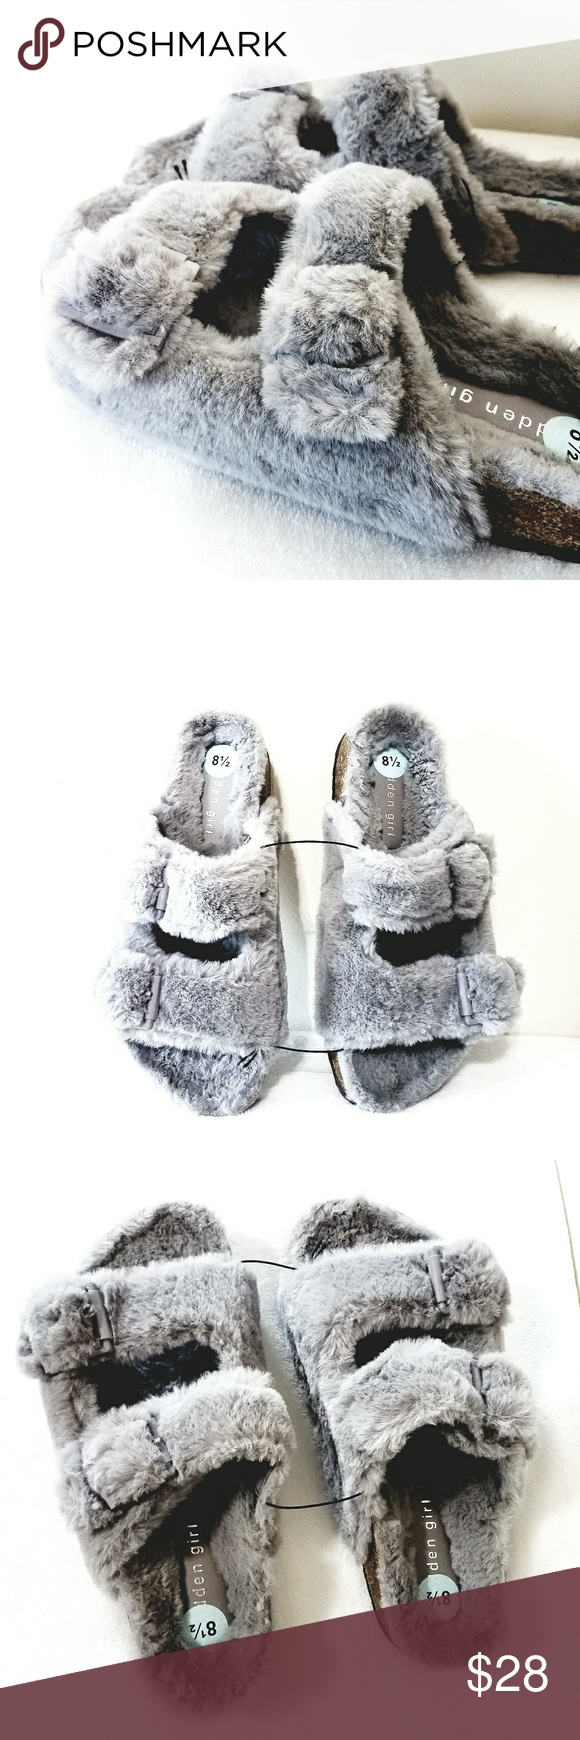 38ed3bb910a Madden Girl Furry Slides Brand New. Size 8.5 Gray No box Madden Girl Shoes